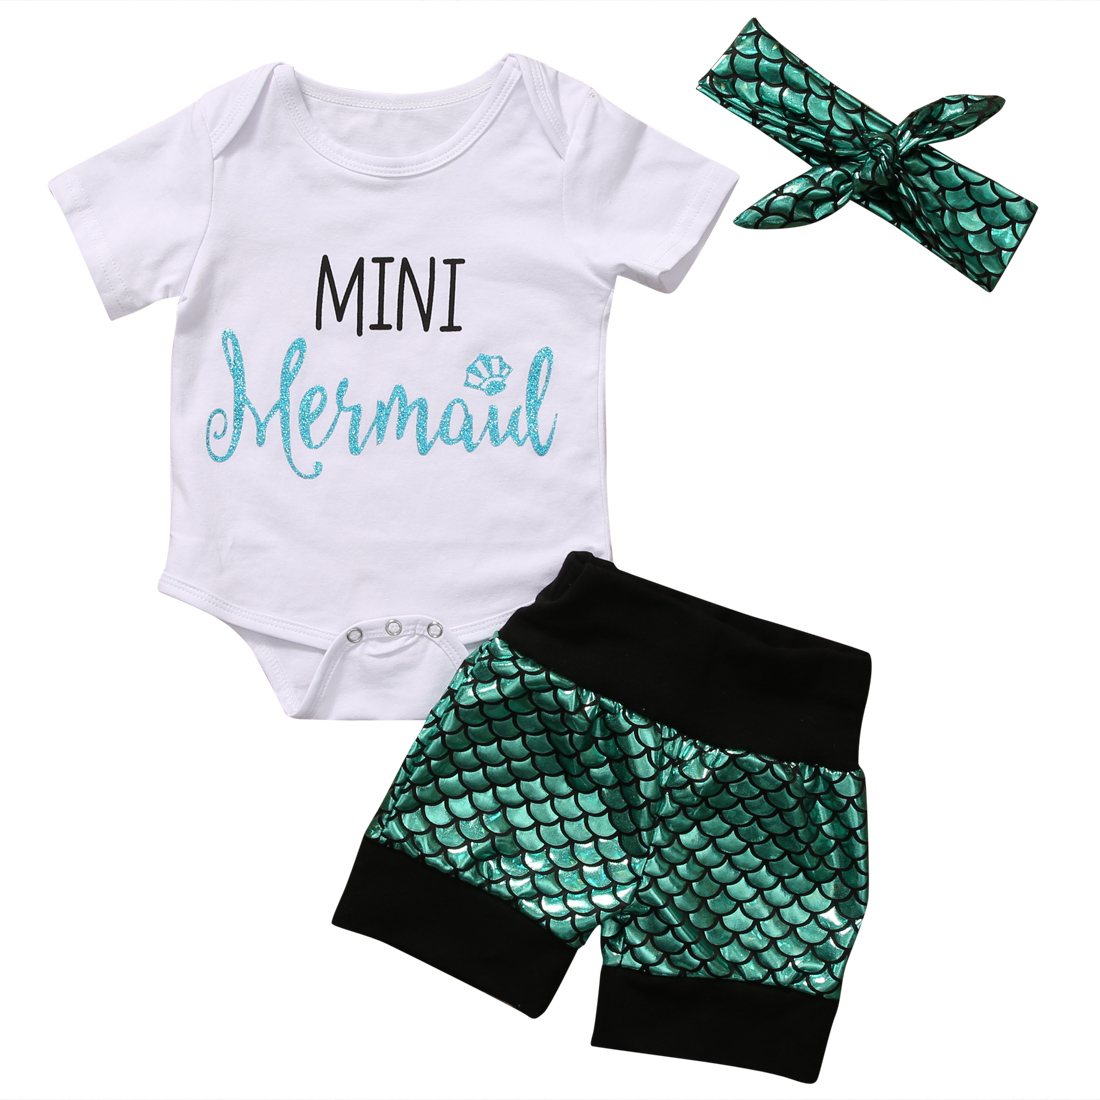 3PCS Mini Mermaid Newborn Baby Girl Clothes 2017 Summer Short Sleeve Cotton Romper Bodysuit+Sea-Maid Bottom Outfit Clothing Set 3pcs set newborn infant baby boy girl clothes 2017 summer short sleeve leopard floral romper bodysuit headband shoes outfits